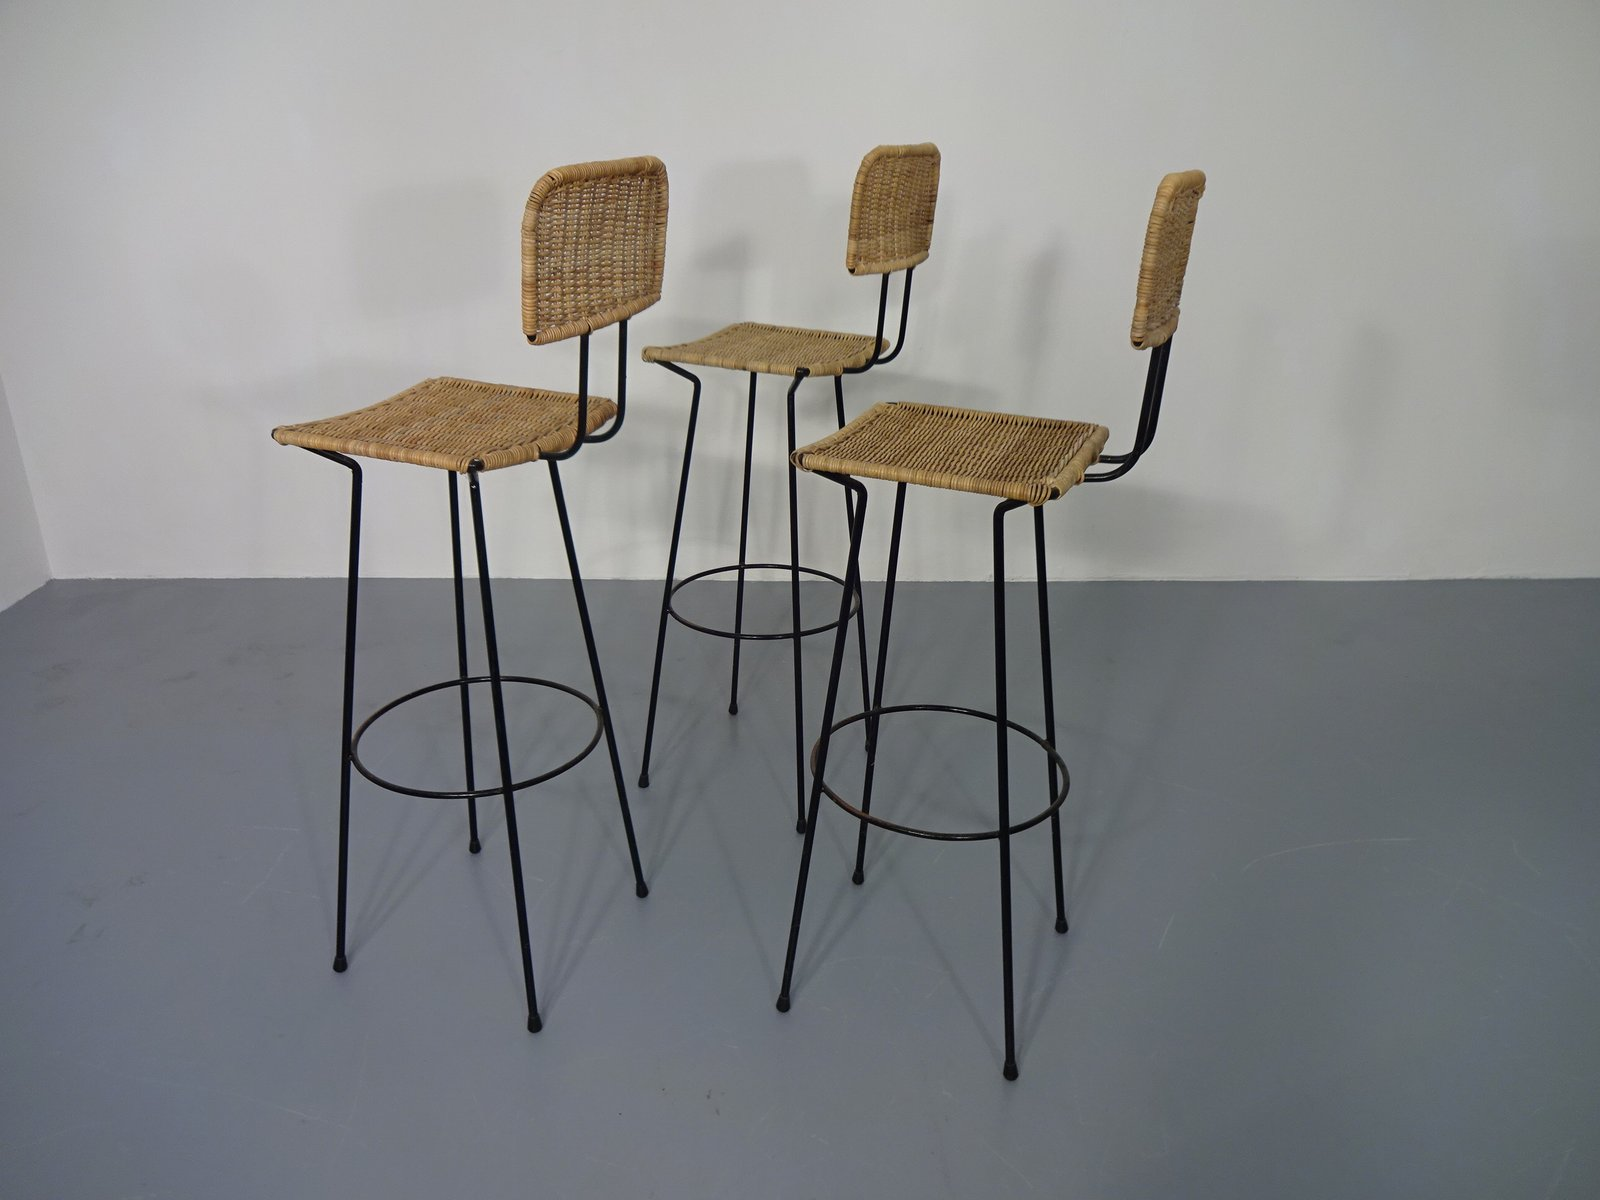 Rattan Bar Stools 1960s Set Of 3 For Sale At Pamono